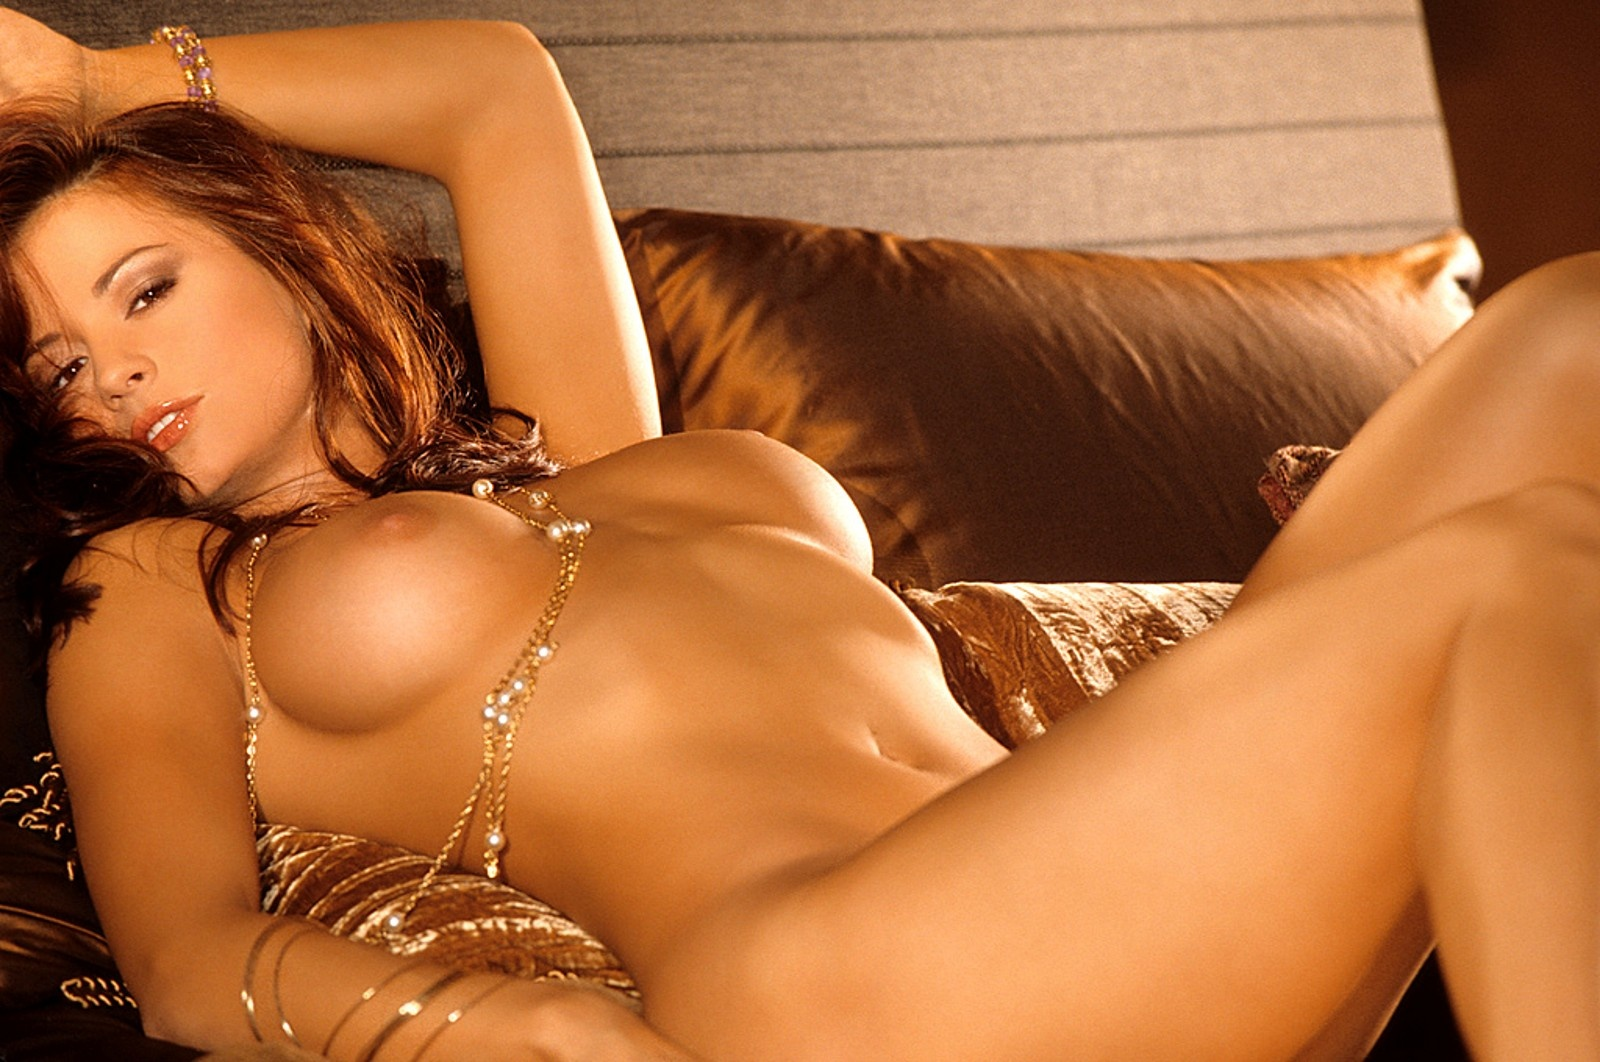 Wallpaper Candice Michelle, Brunette, Boobs, Nude, Naked -6967